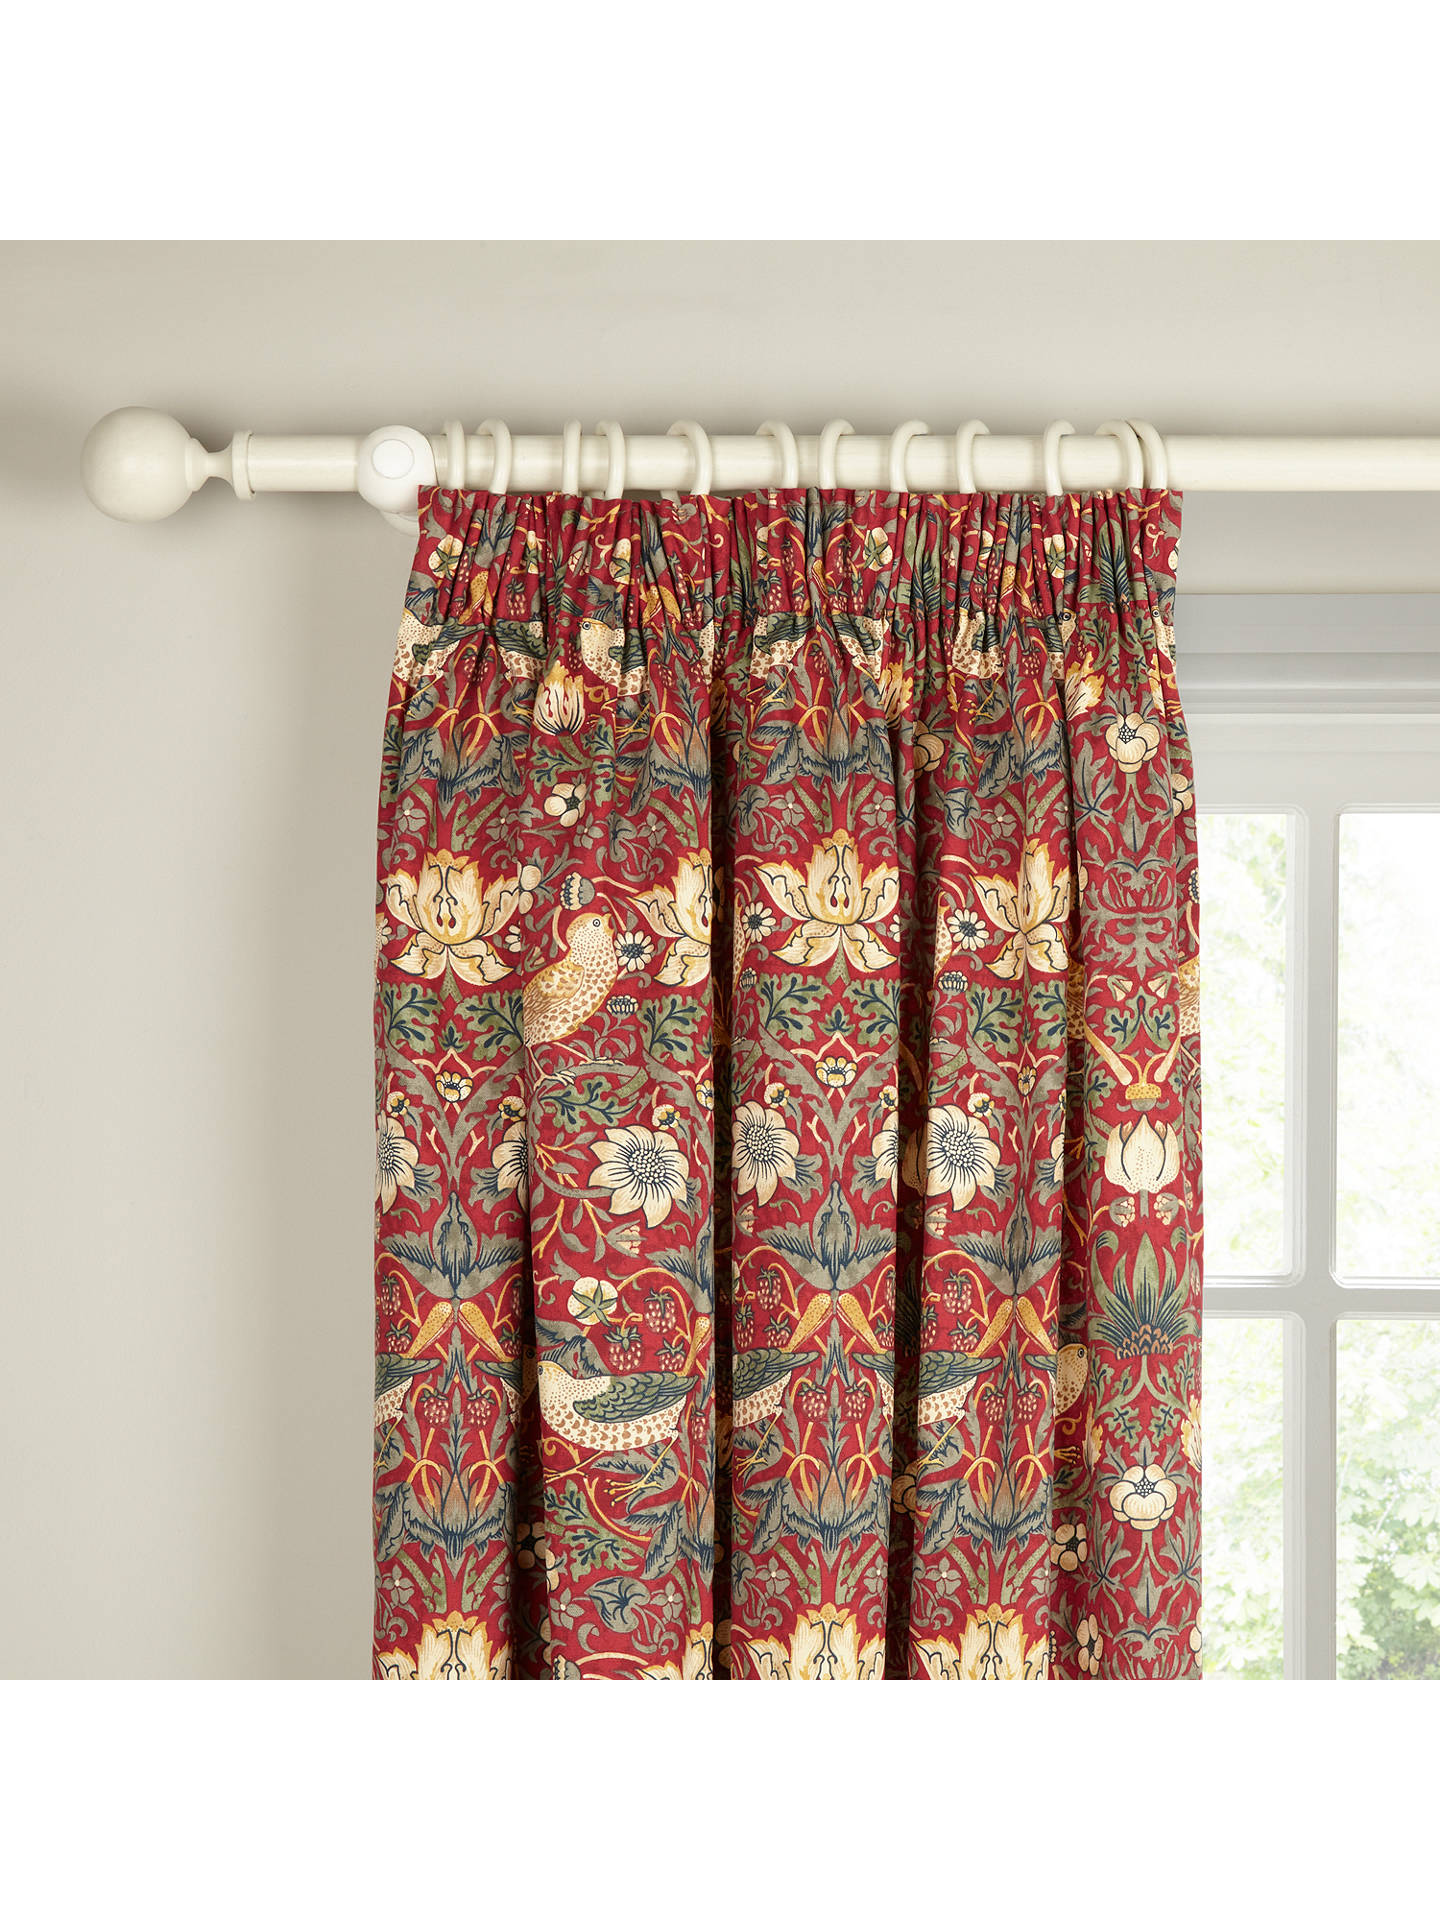 Buy Morris & Co. Strawberry Thief Pair Lined Pencil Pleat Curtains, Red, W117 x Drop 137cm Online at johnlewis.com